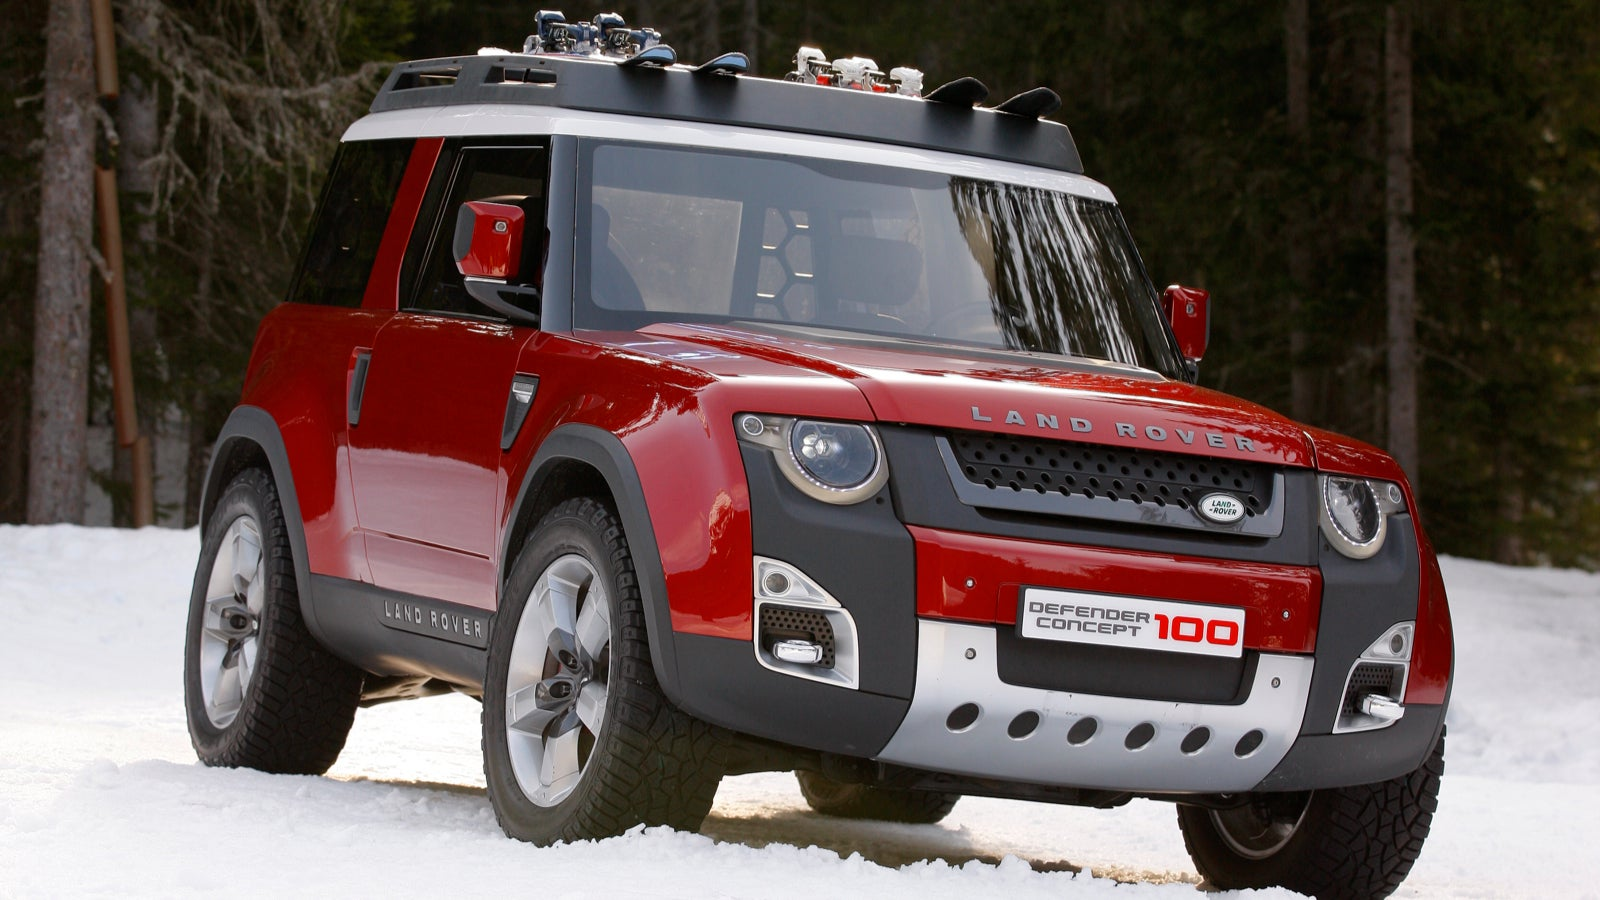 The Next Land Rover Defender Is Coming To America